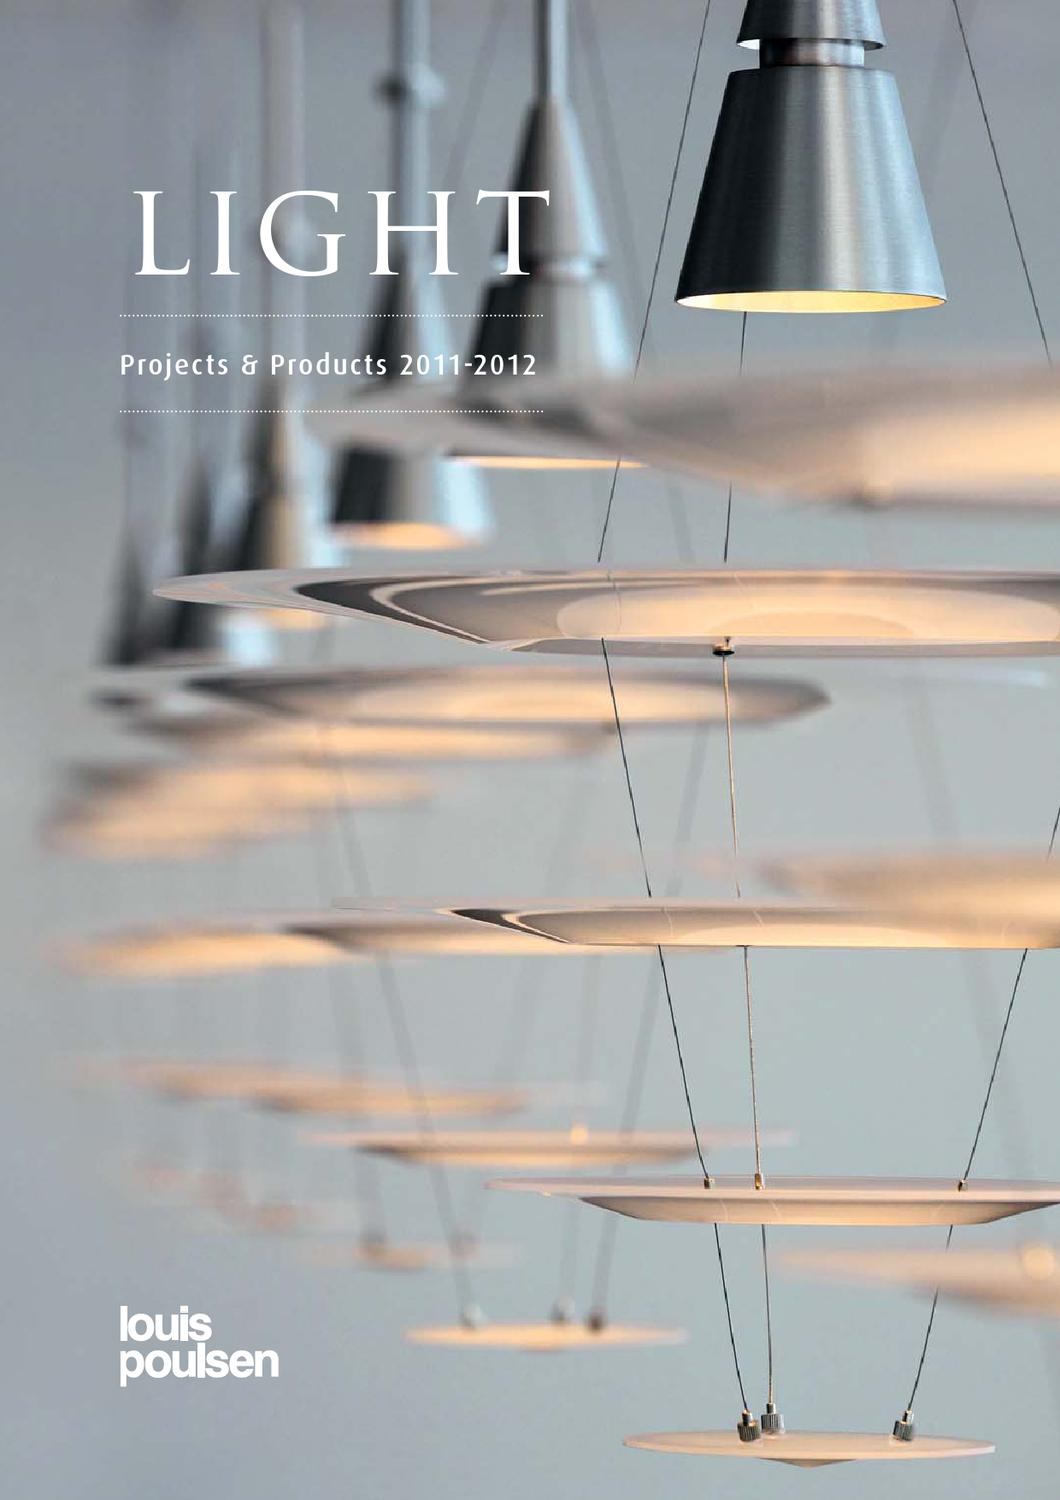 louis poulsen catalogue 2011 2012 by design denmark issuu amager bryghus lighting set